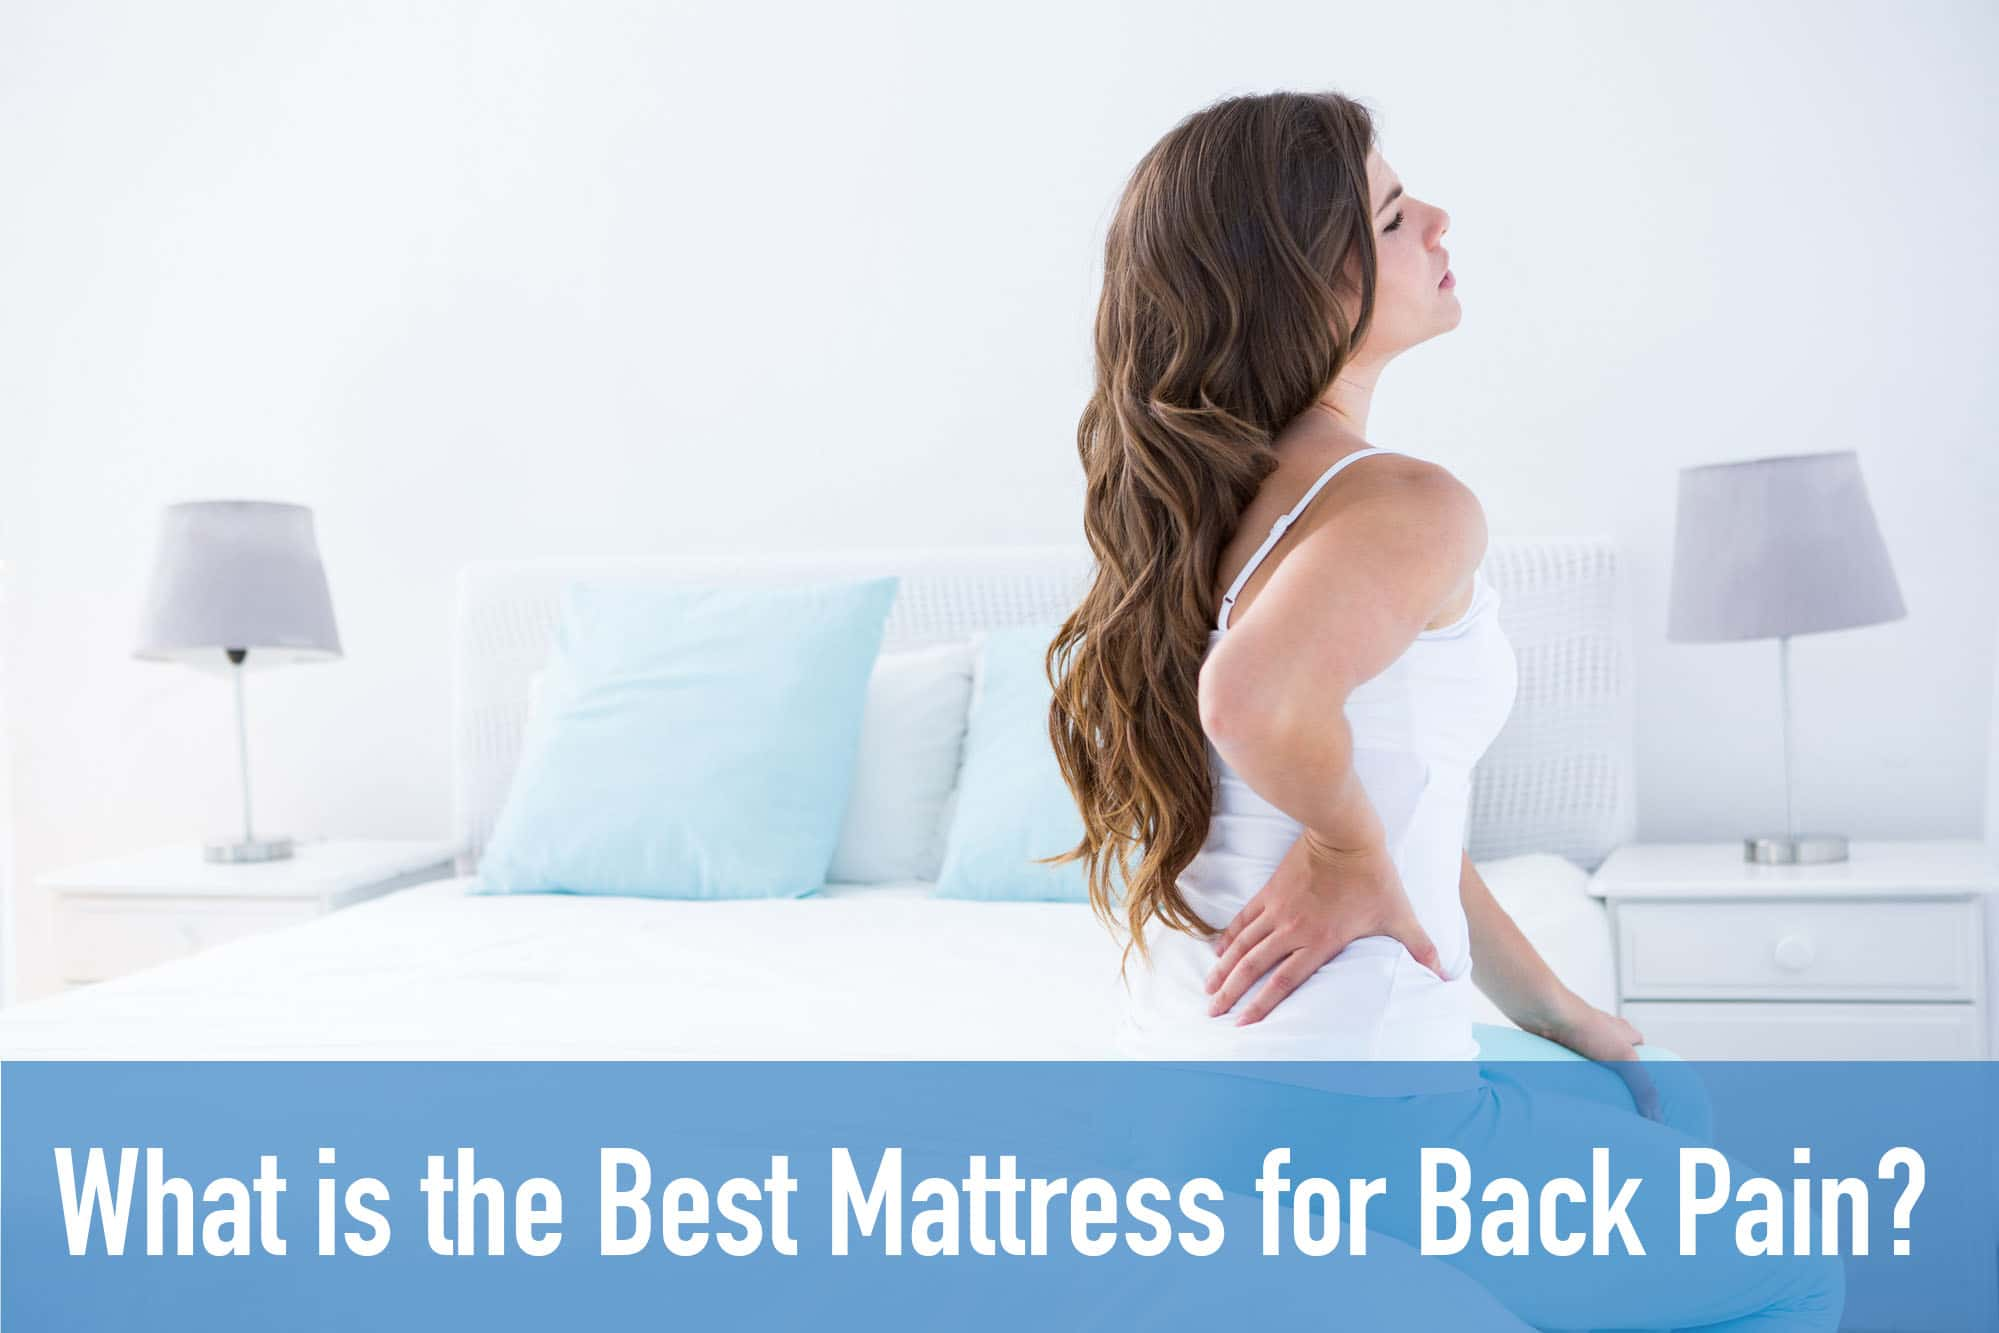 Best Mattress For Back Pain 2020 The Top 10 Compared